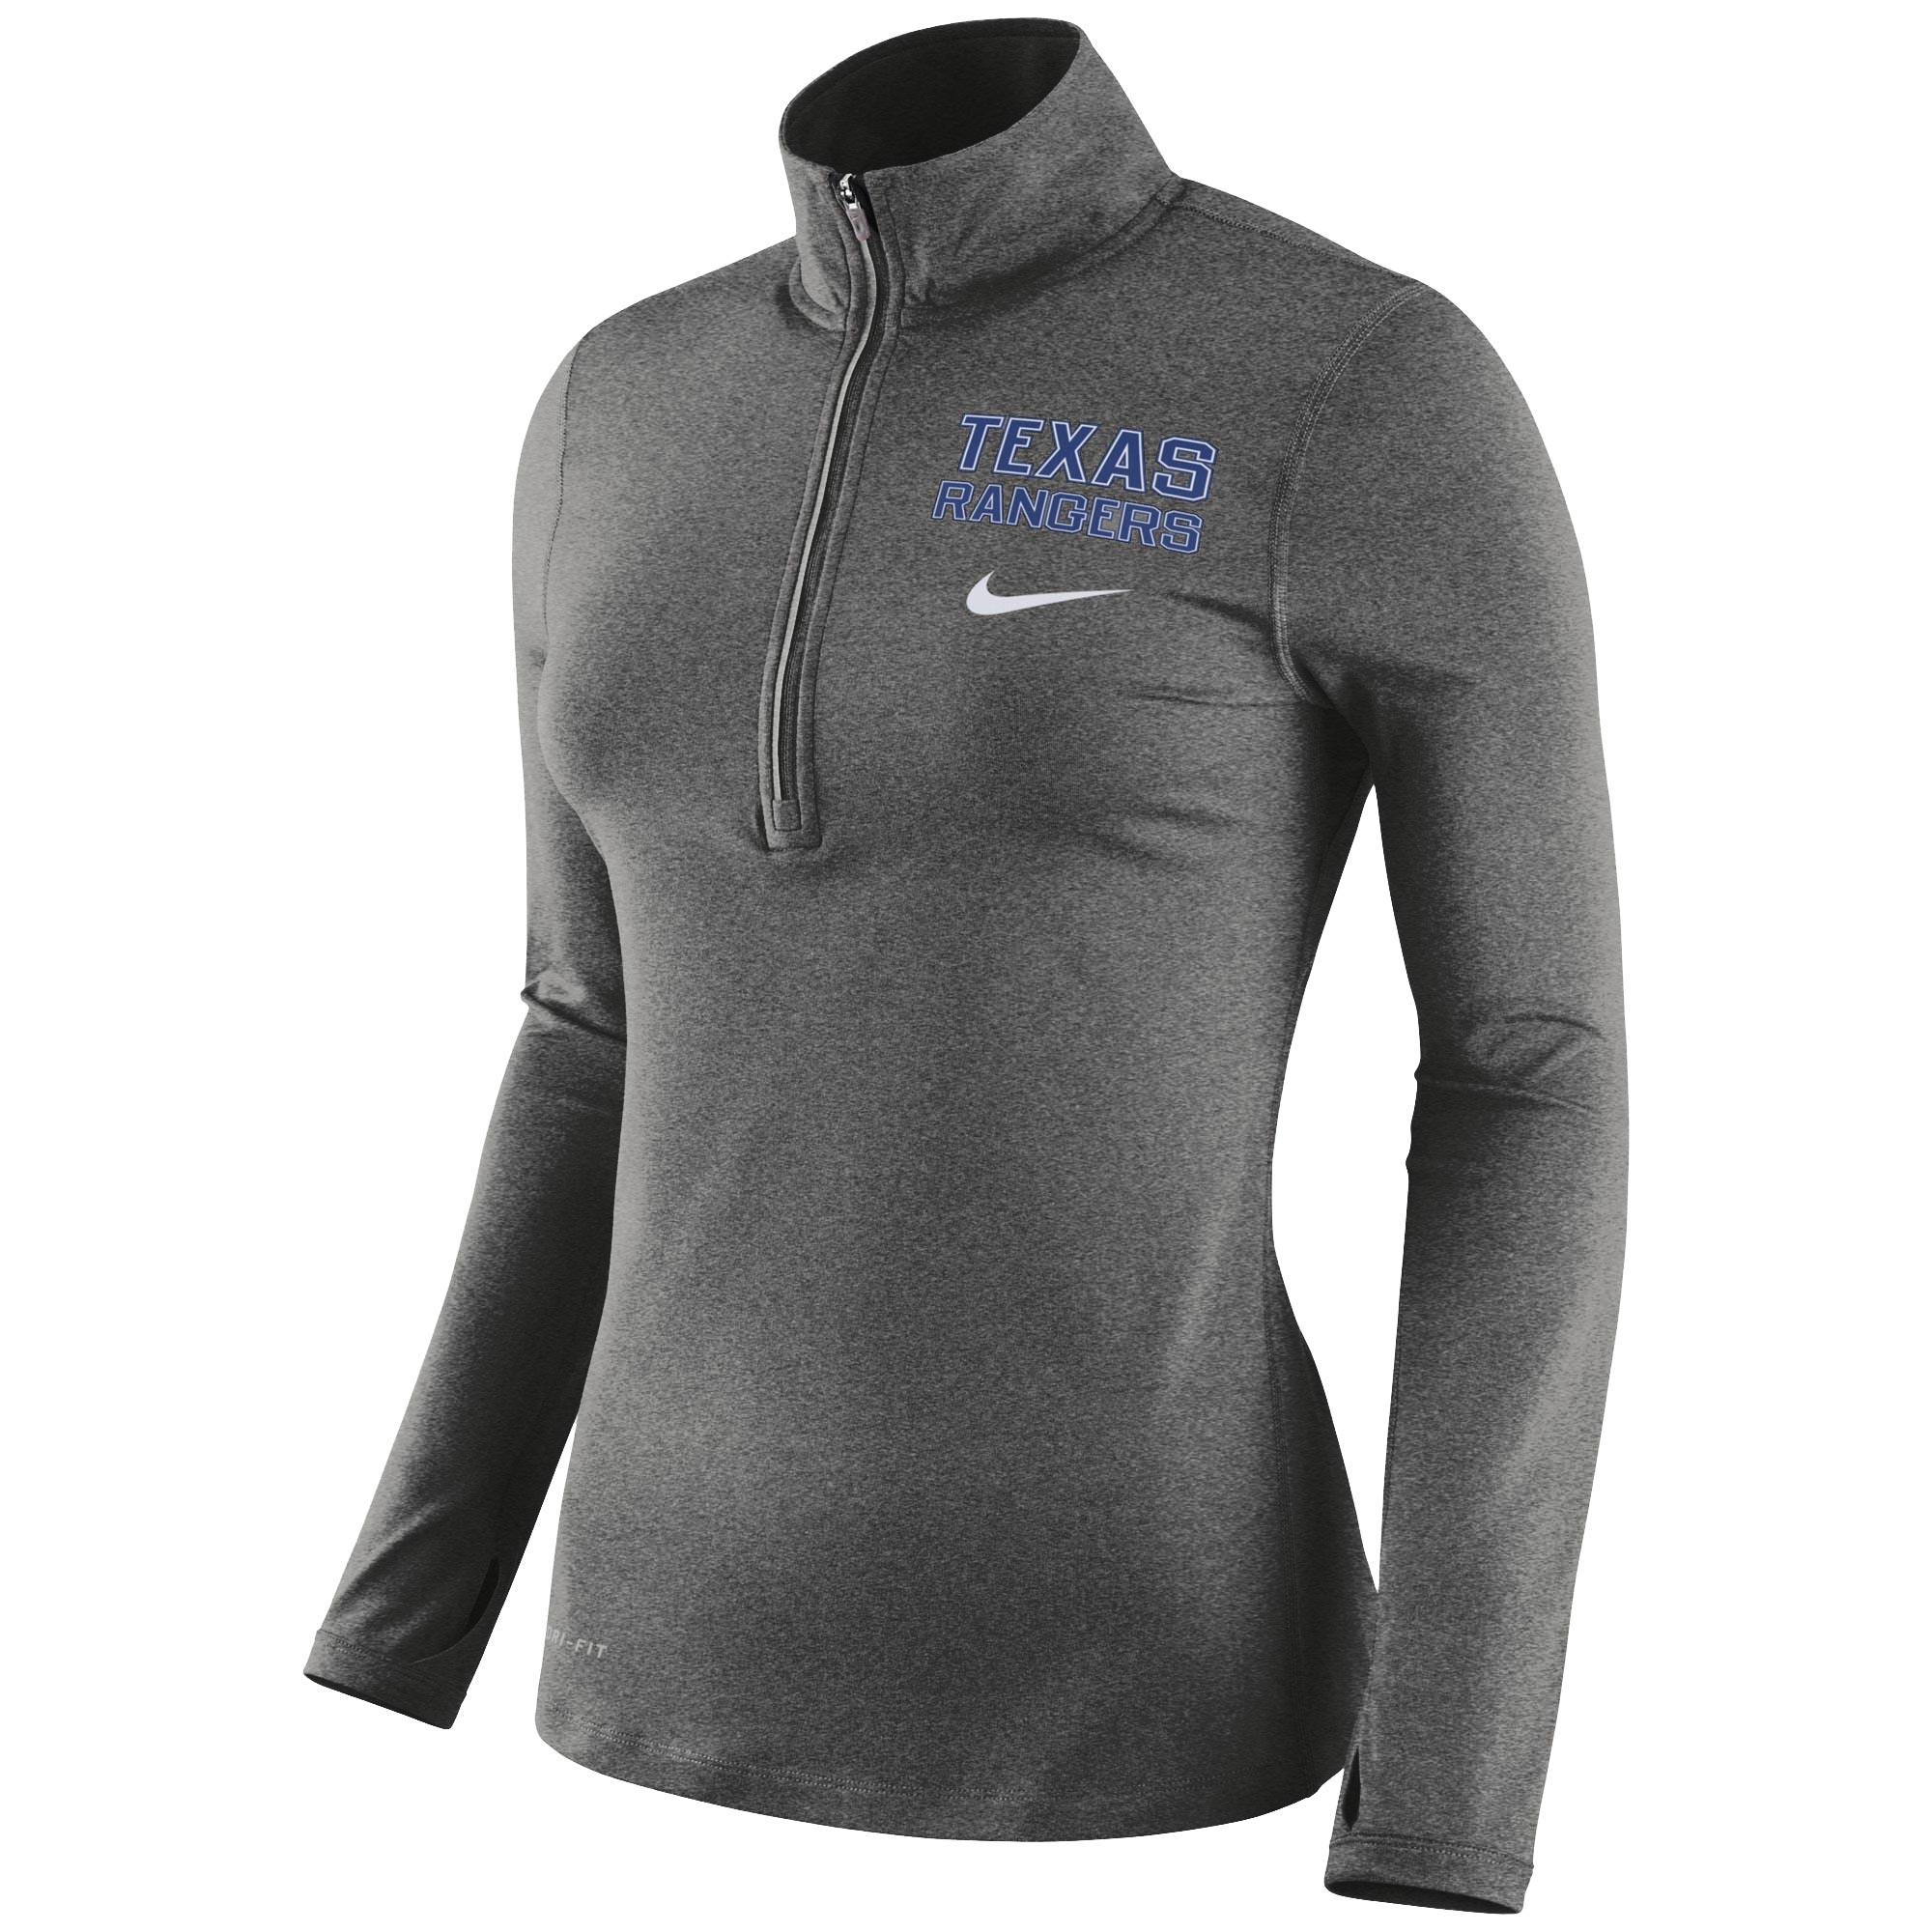 Texas Rangers Nike Women's Element Half-Zip Performance Jacket - Heathered Gray